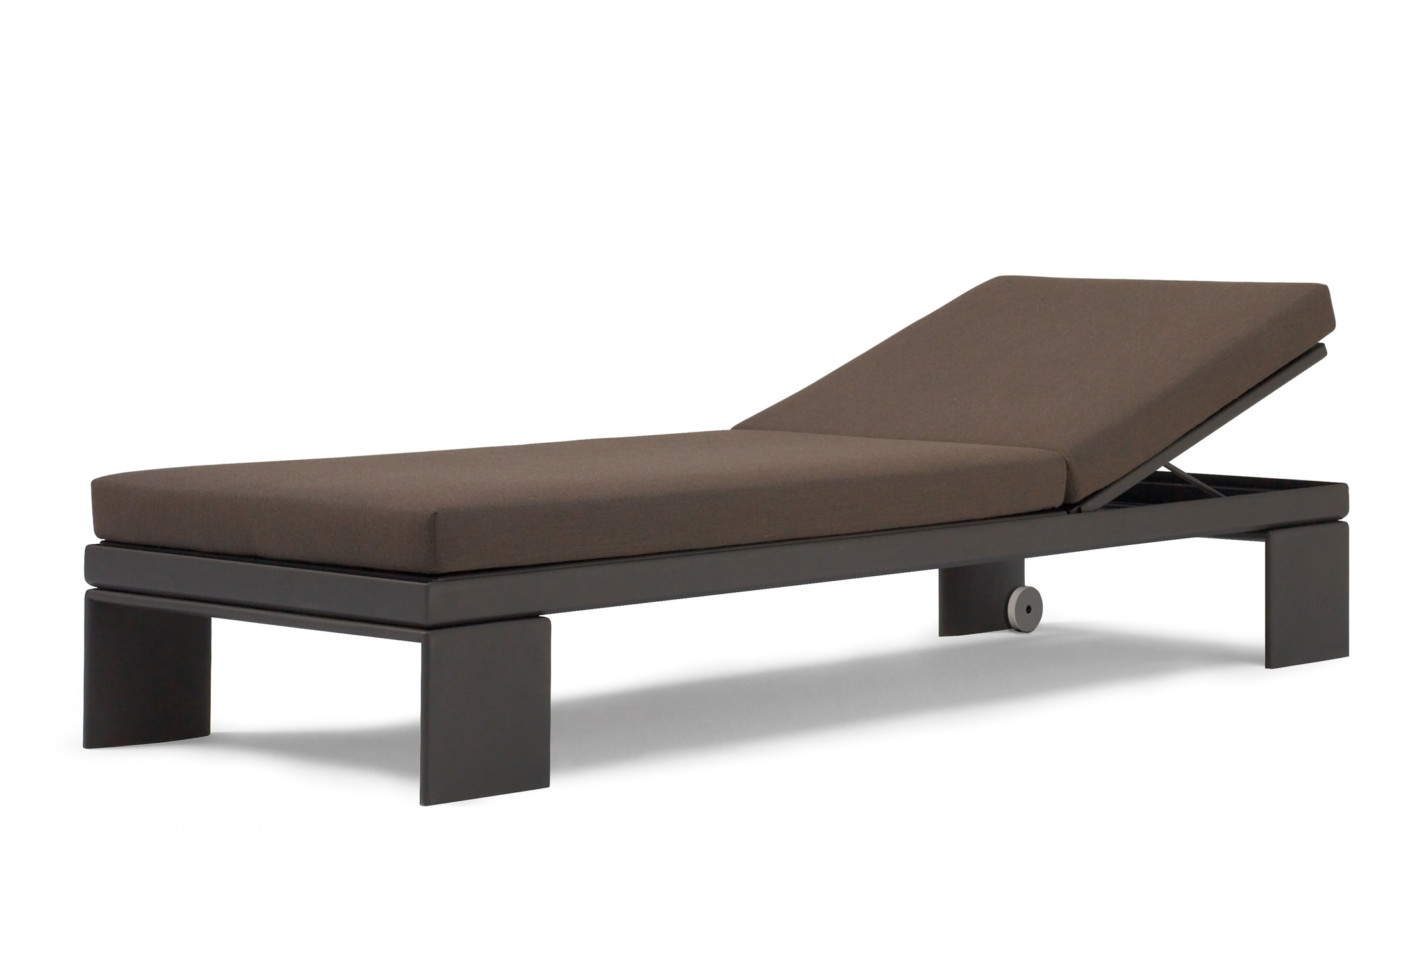 Landscape alu chaise longue by andreu world stylepark for Chaise annee 90